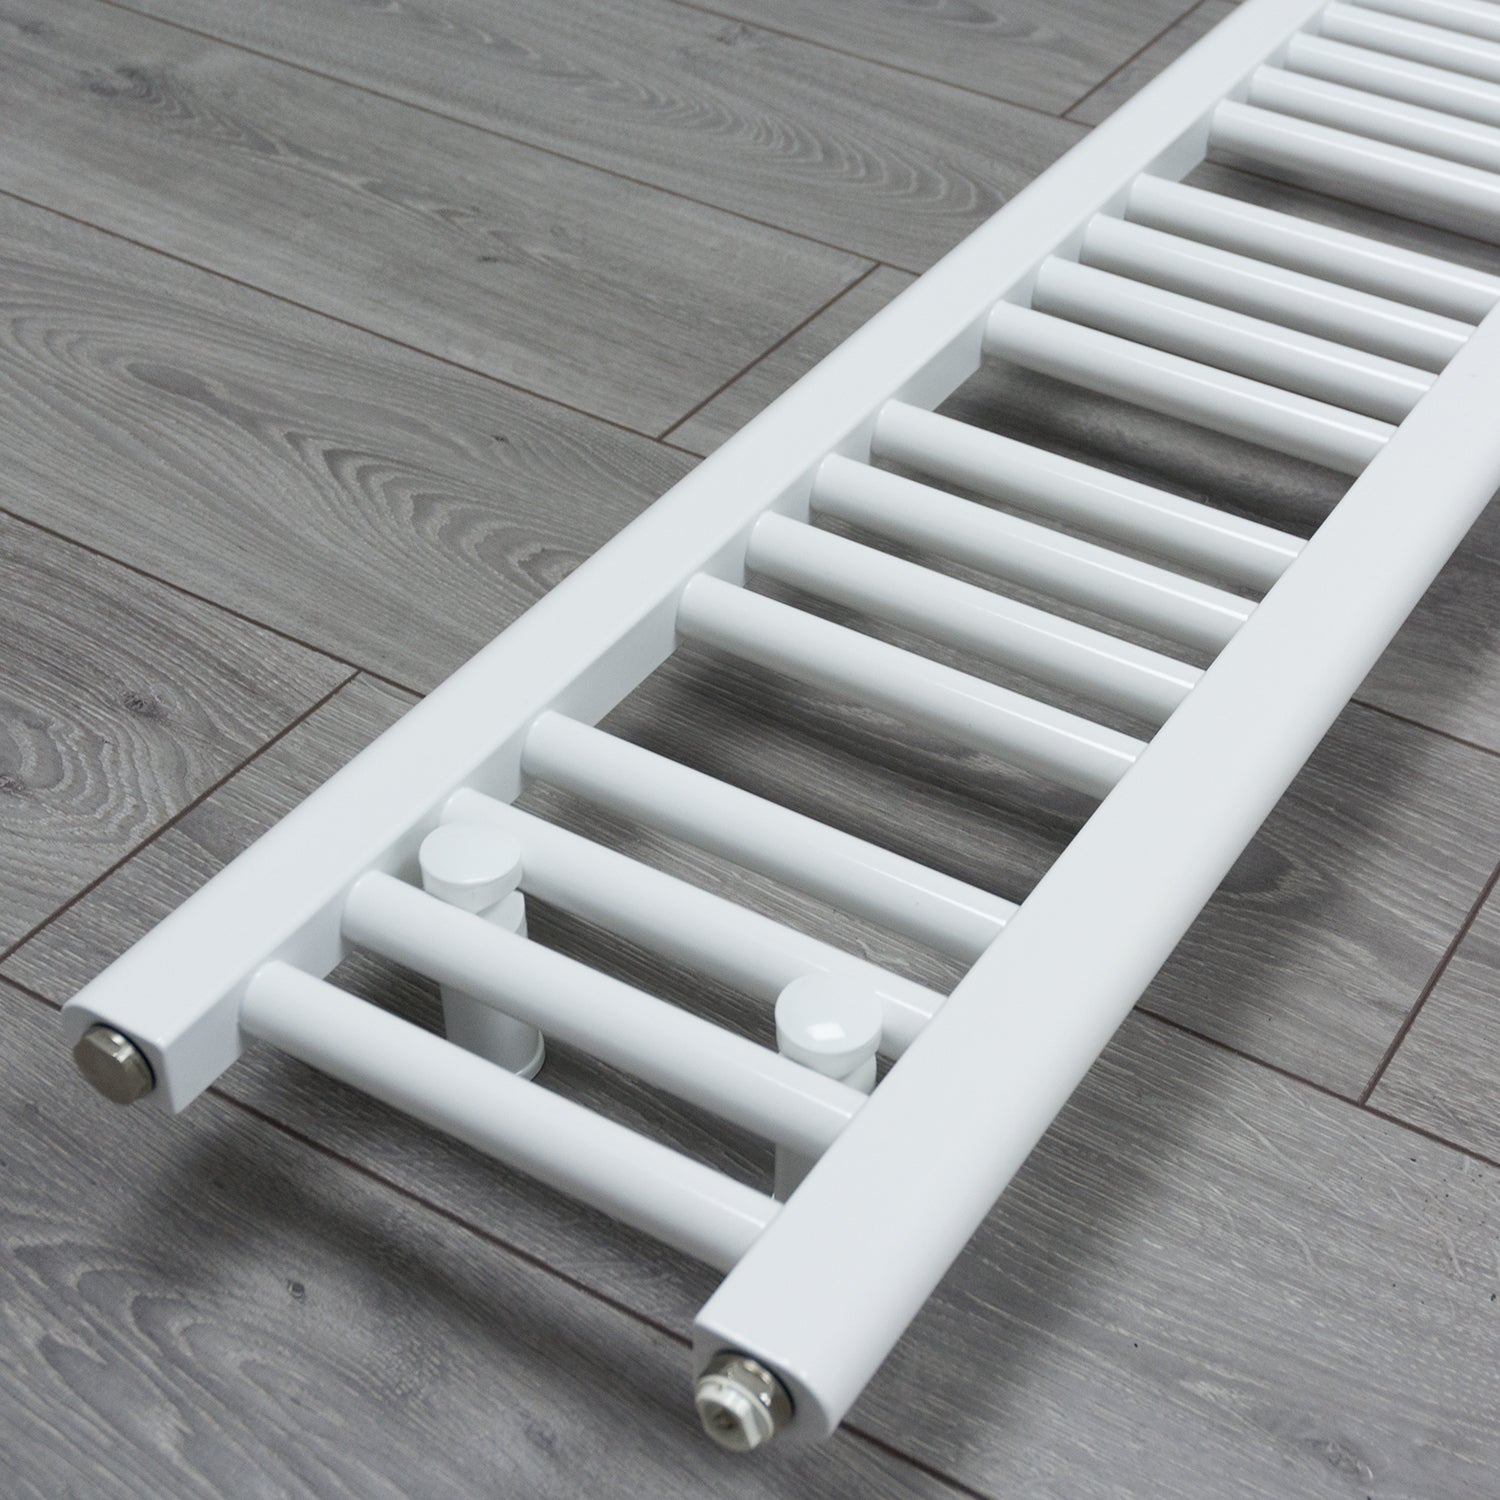 200mm x 1000mm White Heated Towel Rail Radiator Close Up Image